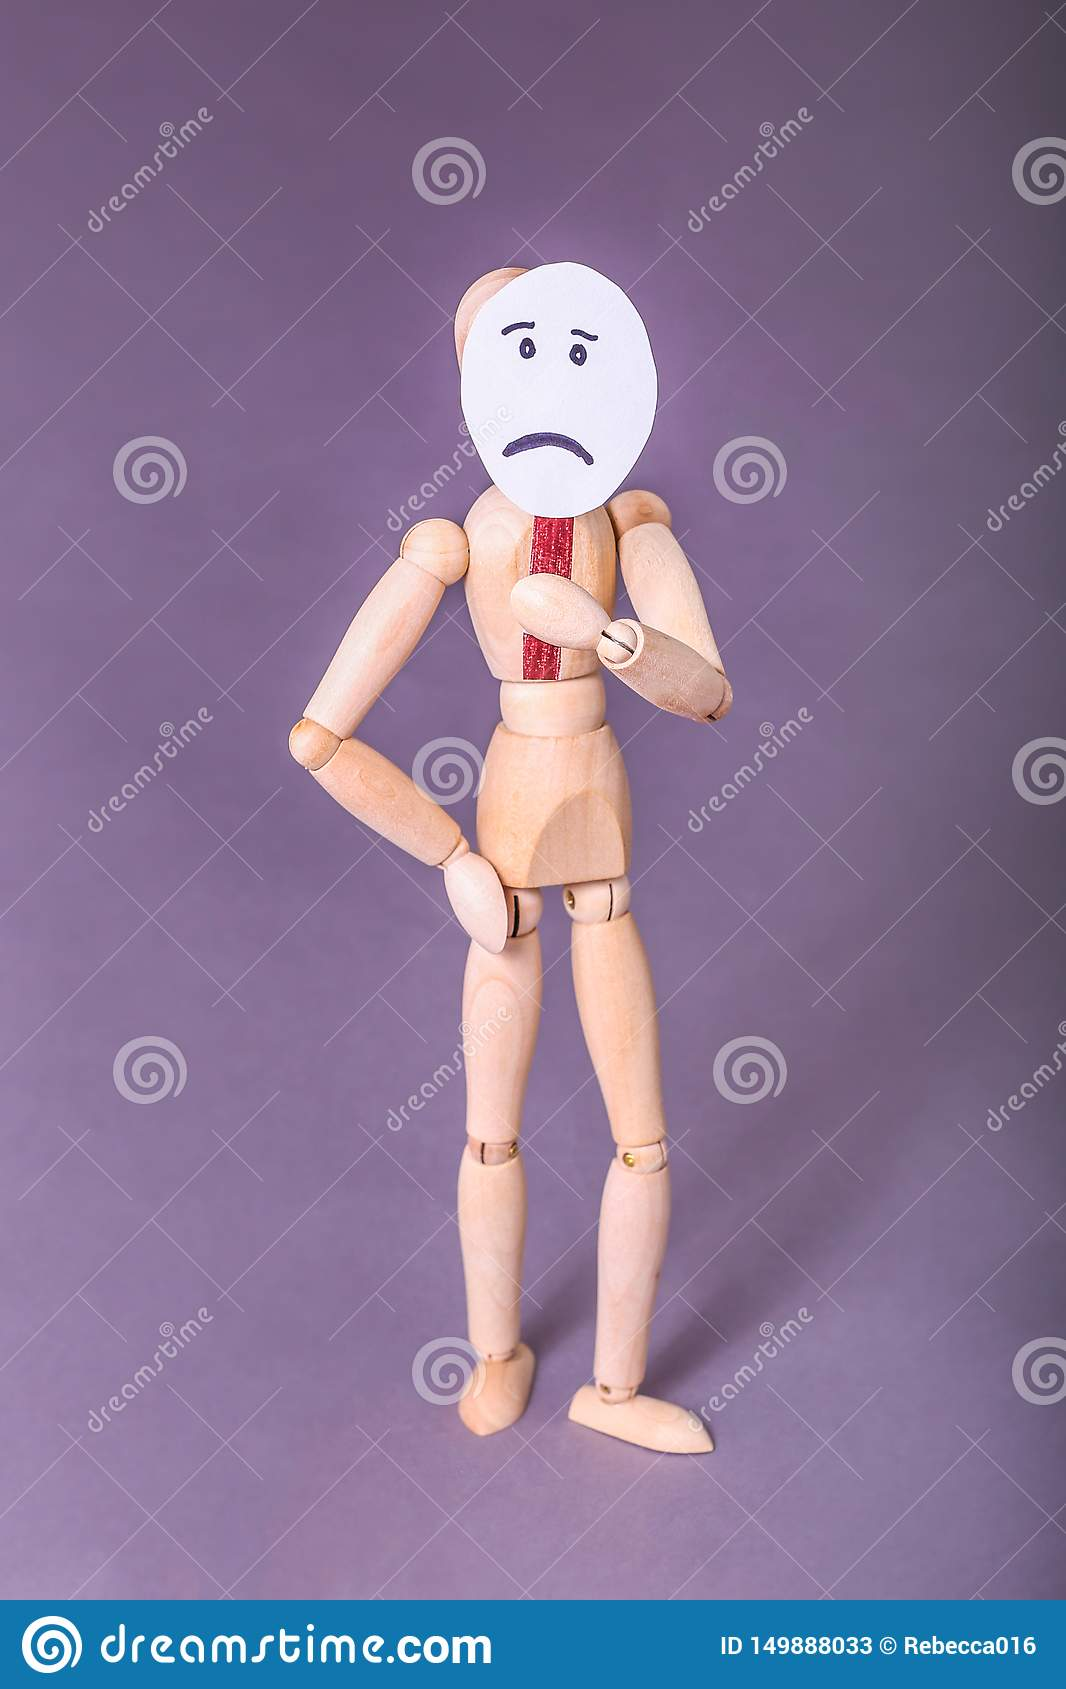 Wooden manikin standing with one hand on hip one hand holding up a sad face sign over his face